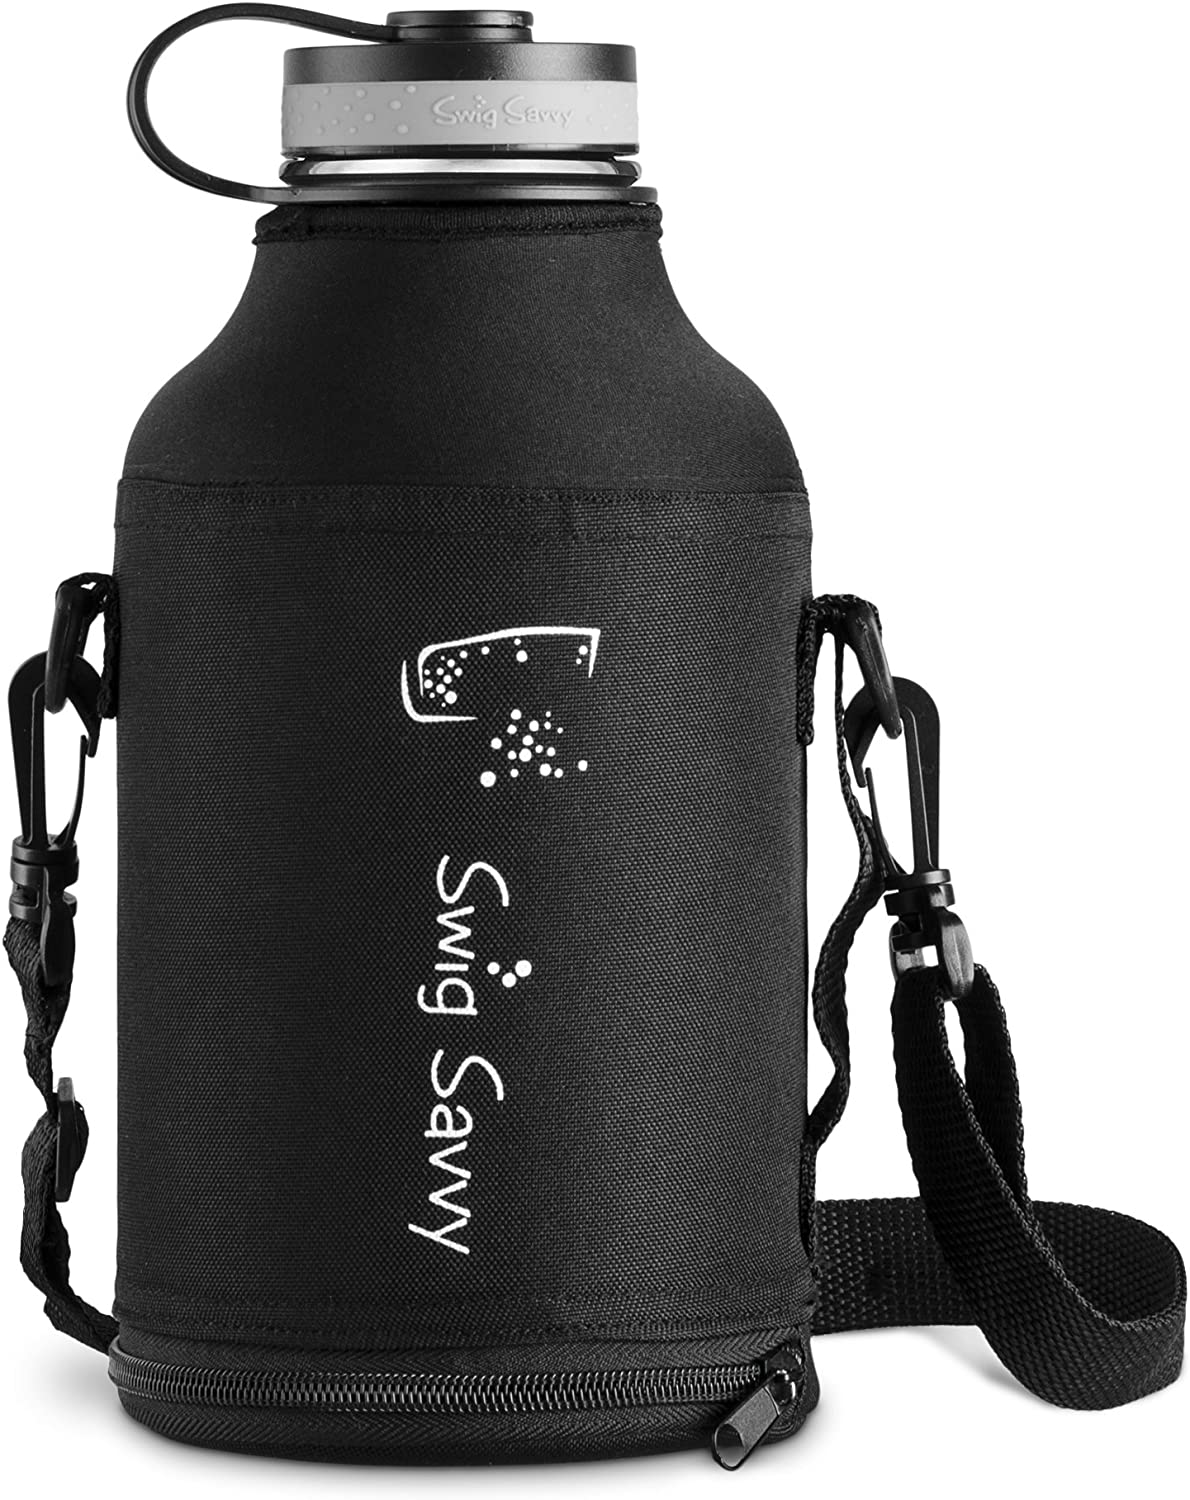 Swig Savvy Stainless Steel Water Bottle Reusable Sweat Proof Thermos Flask for Hot /& Cold Drinks with Coffee Lid /& Carrying Sleeve Pouch 64 oz Vacuum Insulated /& Wide Mouth Design